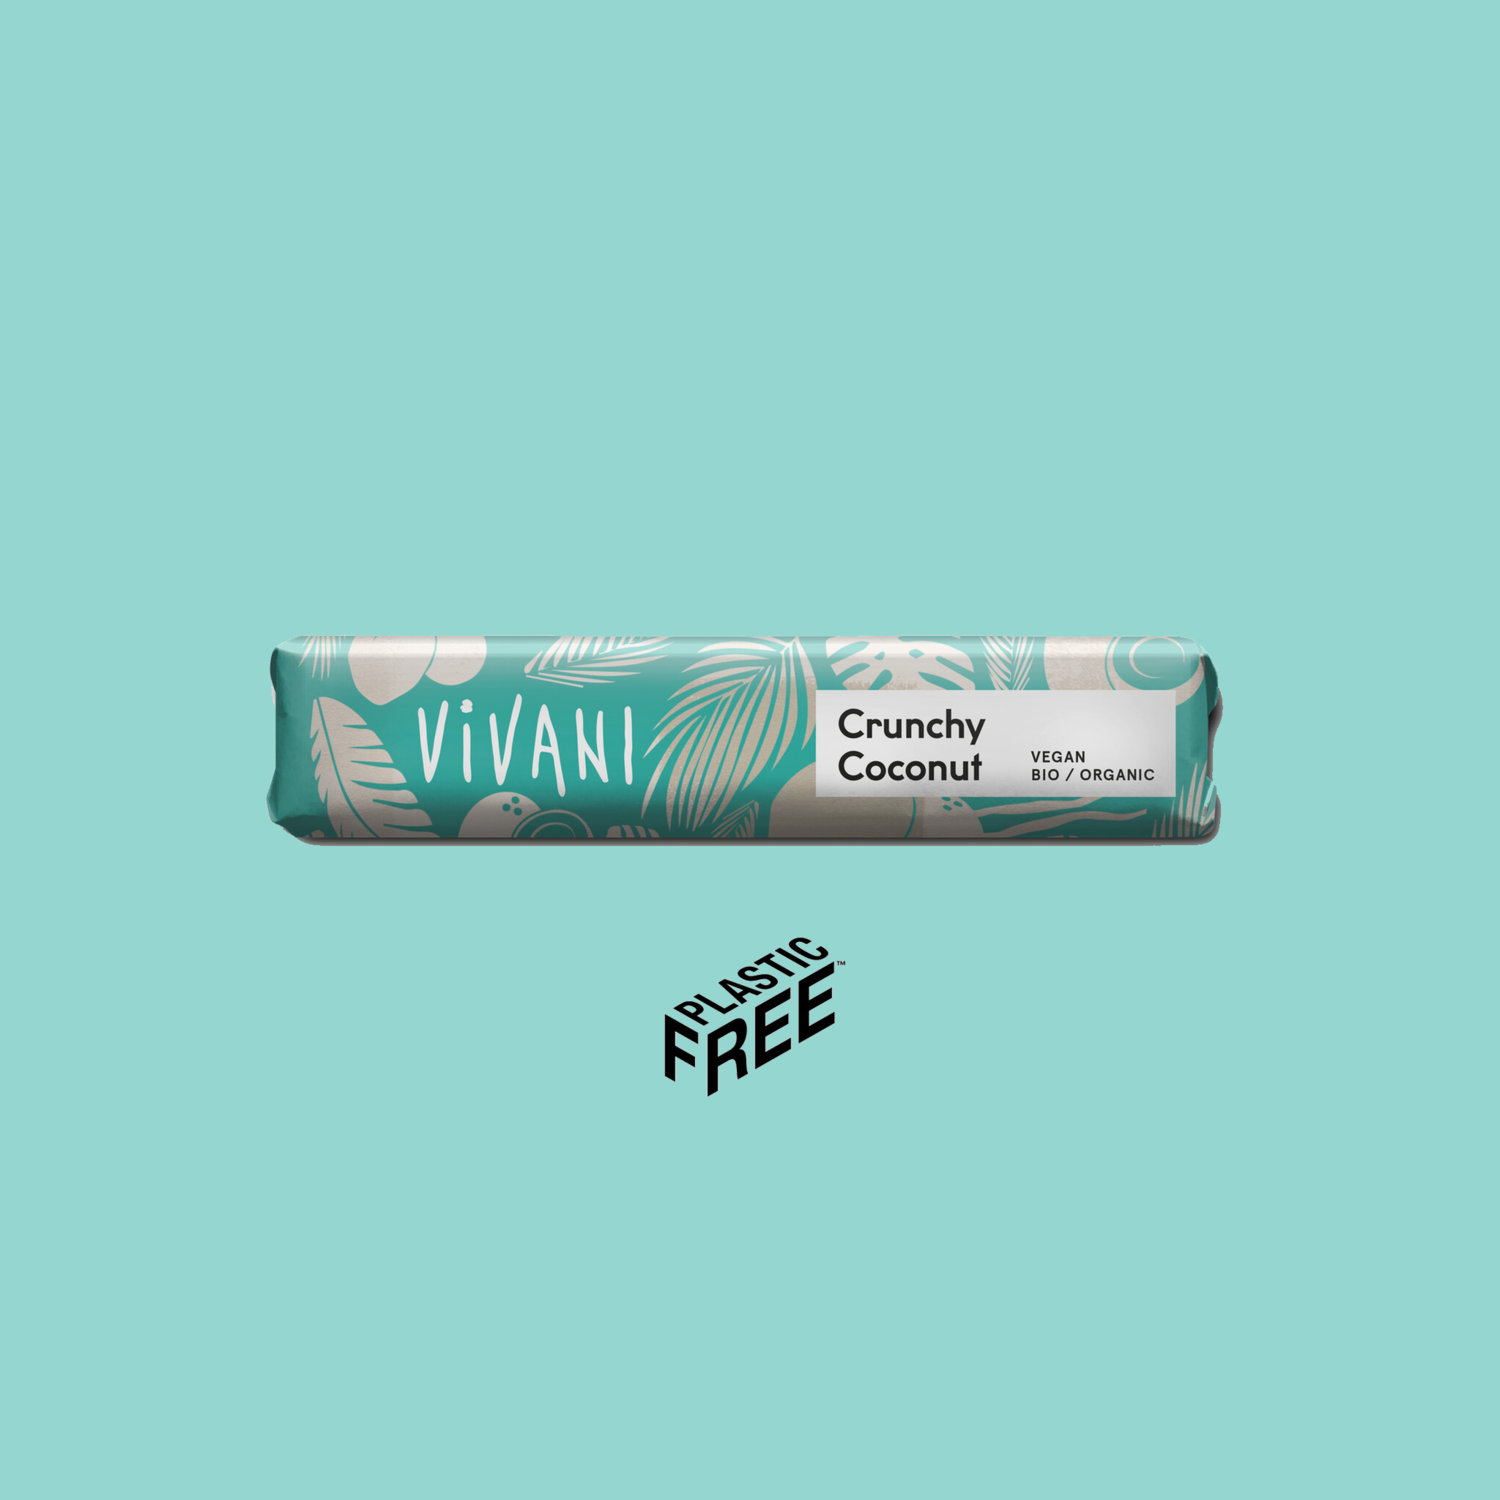 Vivani Bar: Crunchy Coconut Chocolate